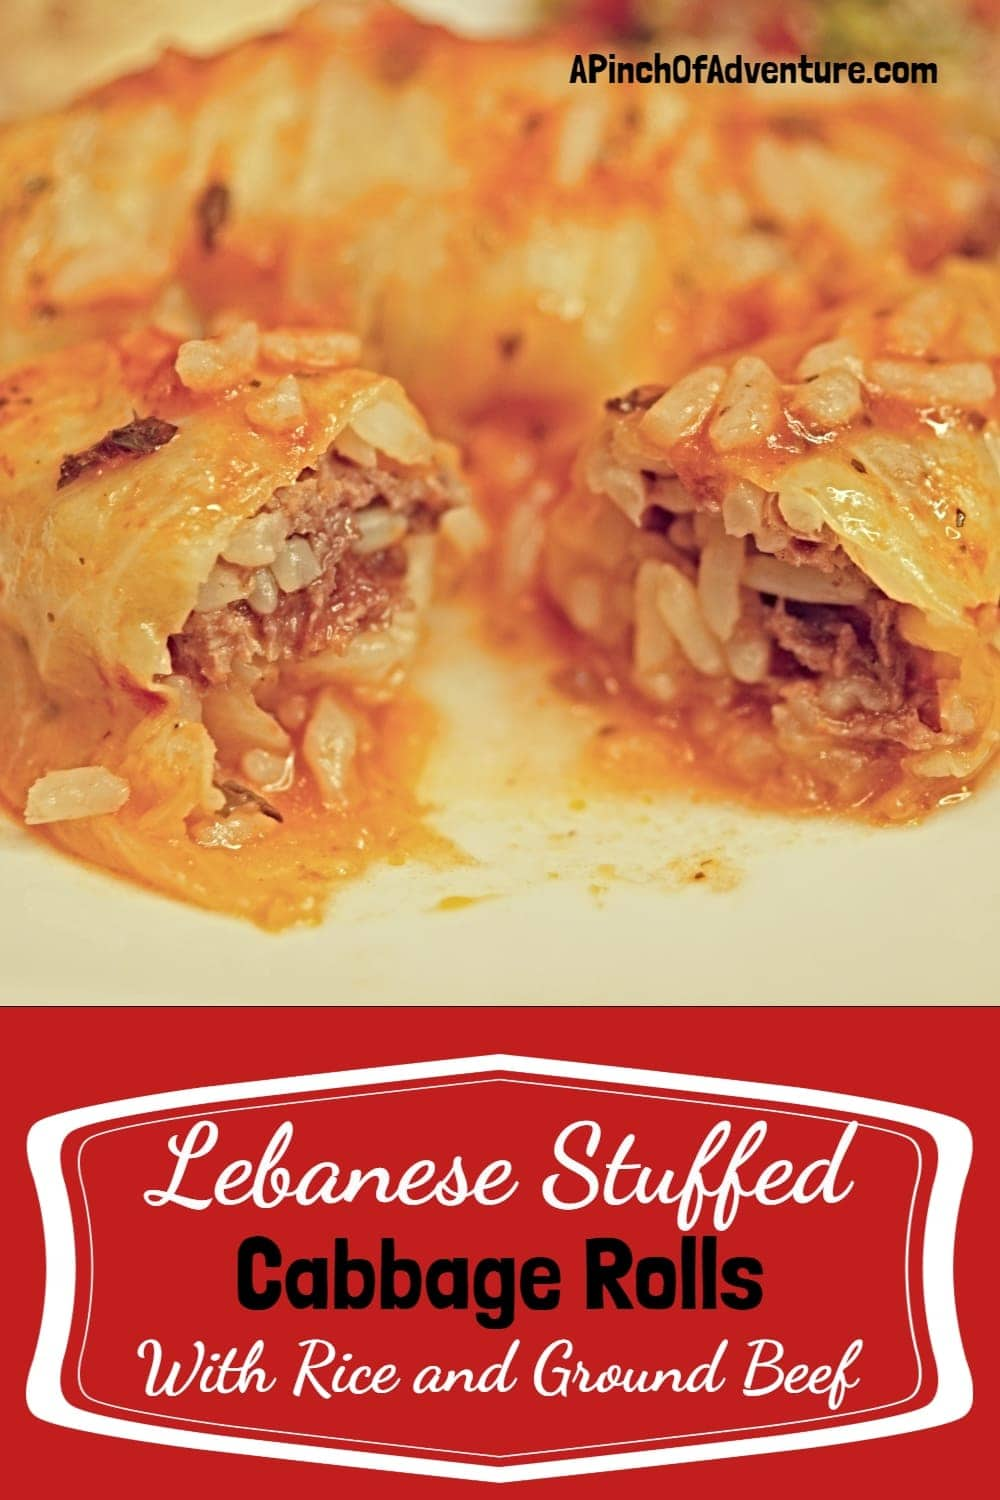 Looking for the best cabbage dish? Here is your recipe for traditional stuffed cabbage rolls. Each roll is a wrap stuffed with rice, ground beef and Mediterranean spices and cooked in tomato sauce to perfection. Healthy, delicious and an easy step by step tutorial how to roll the cabbage leaves. -APinchOfAdventure